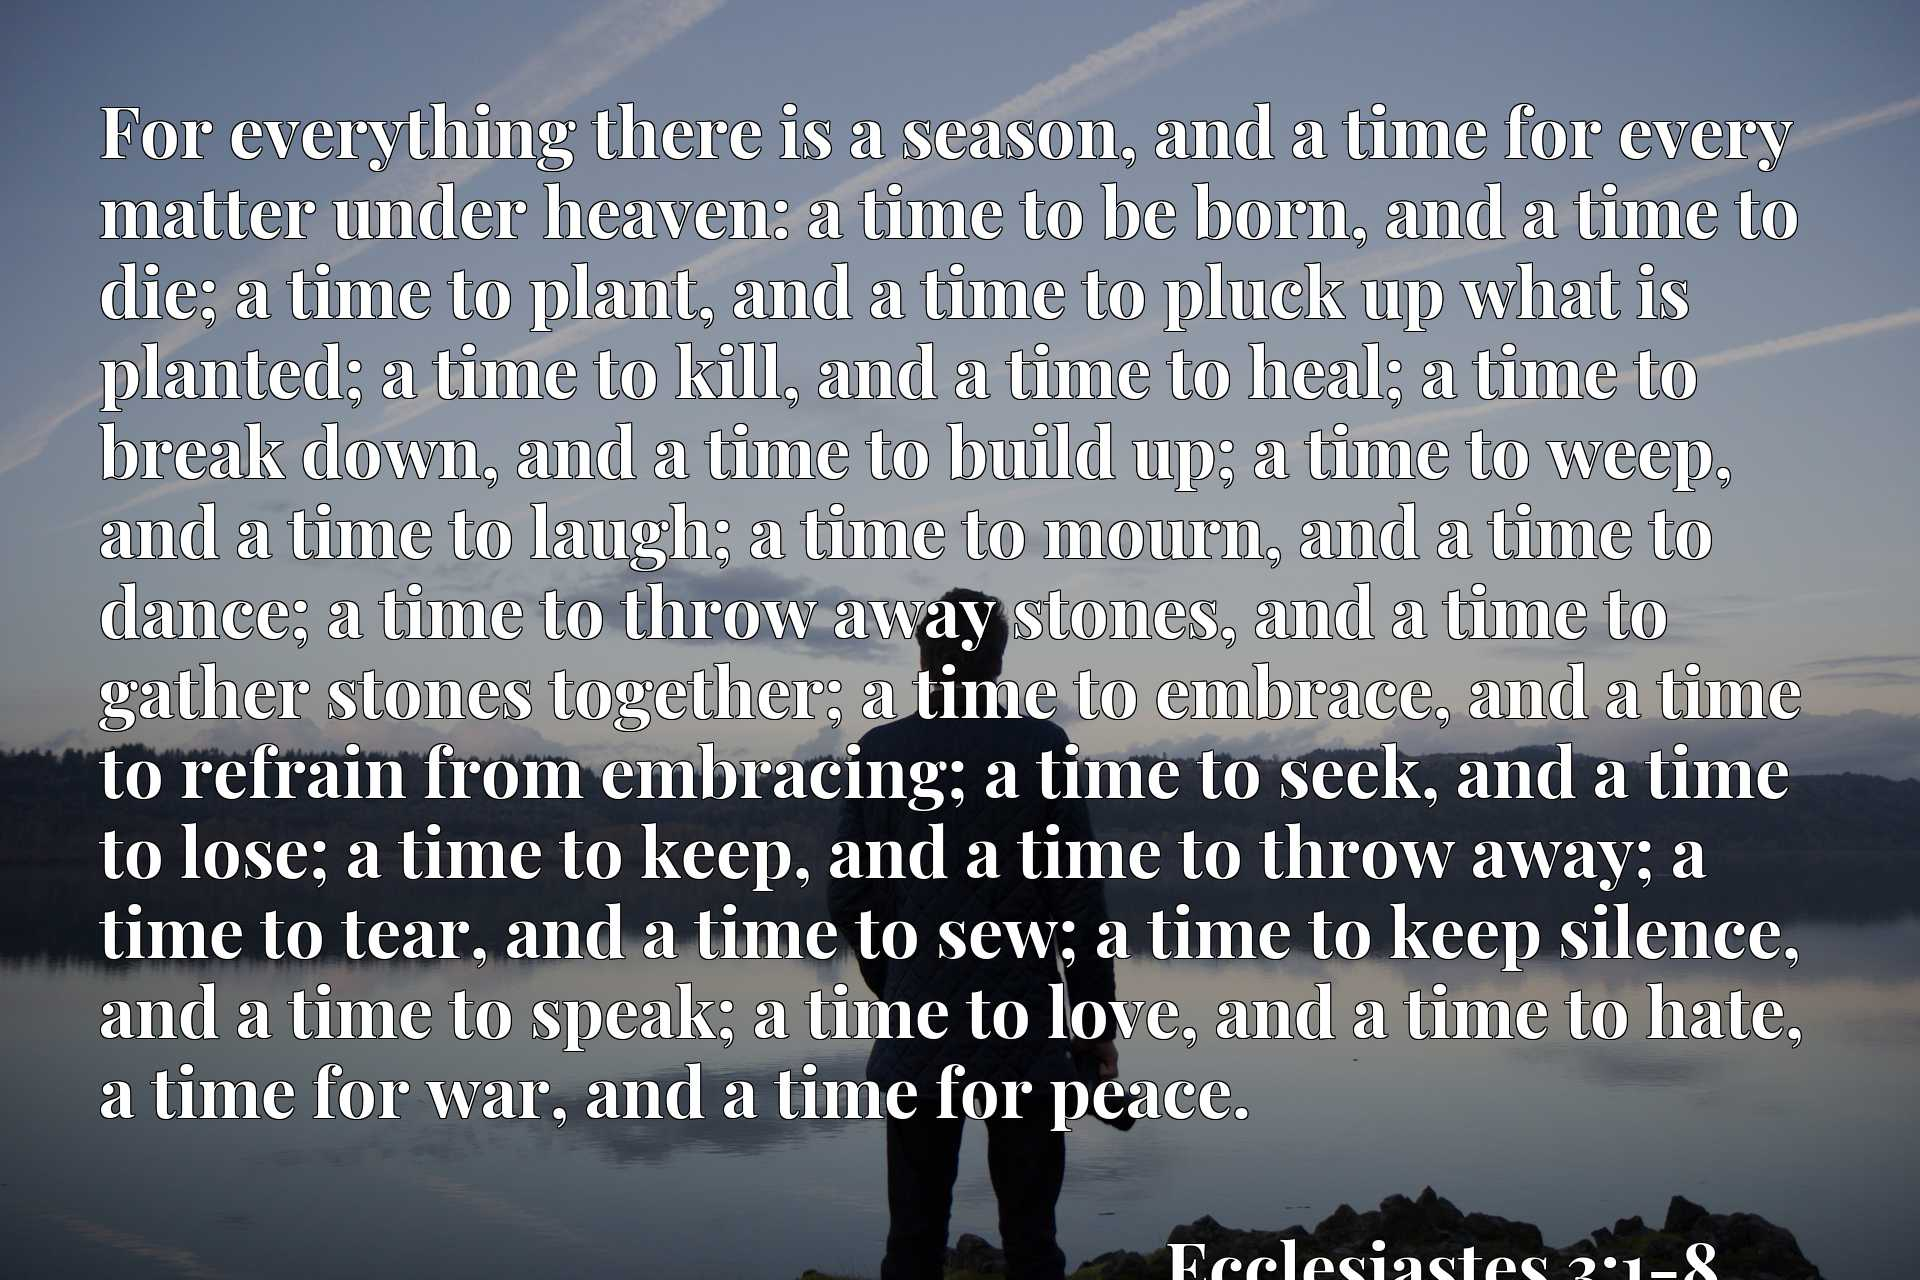 For everything there is a season, and a time for every matter under heaven: a time to be born, and a time to die; a time to plant, and a time to pluck up what is planted; a time to kill, and a time to heal; a time to break down, and a time to build up; a time to weep, and a time to laugh; a time to mourn, and a time to dance; a time to throw away stones, and a time to gather stones together; a time to embrace, and a time to refrain from embracing; a time to seek, and a time to lose; a time to keep, and a time to throw away; a time to tear, and a time to sew; a time to keep silence, and a time to speak; a time to love, and a time to hate, a time for war, and a time for peace.